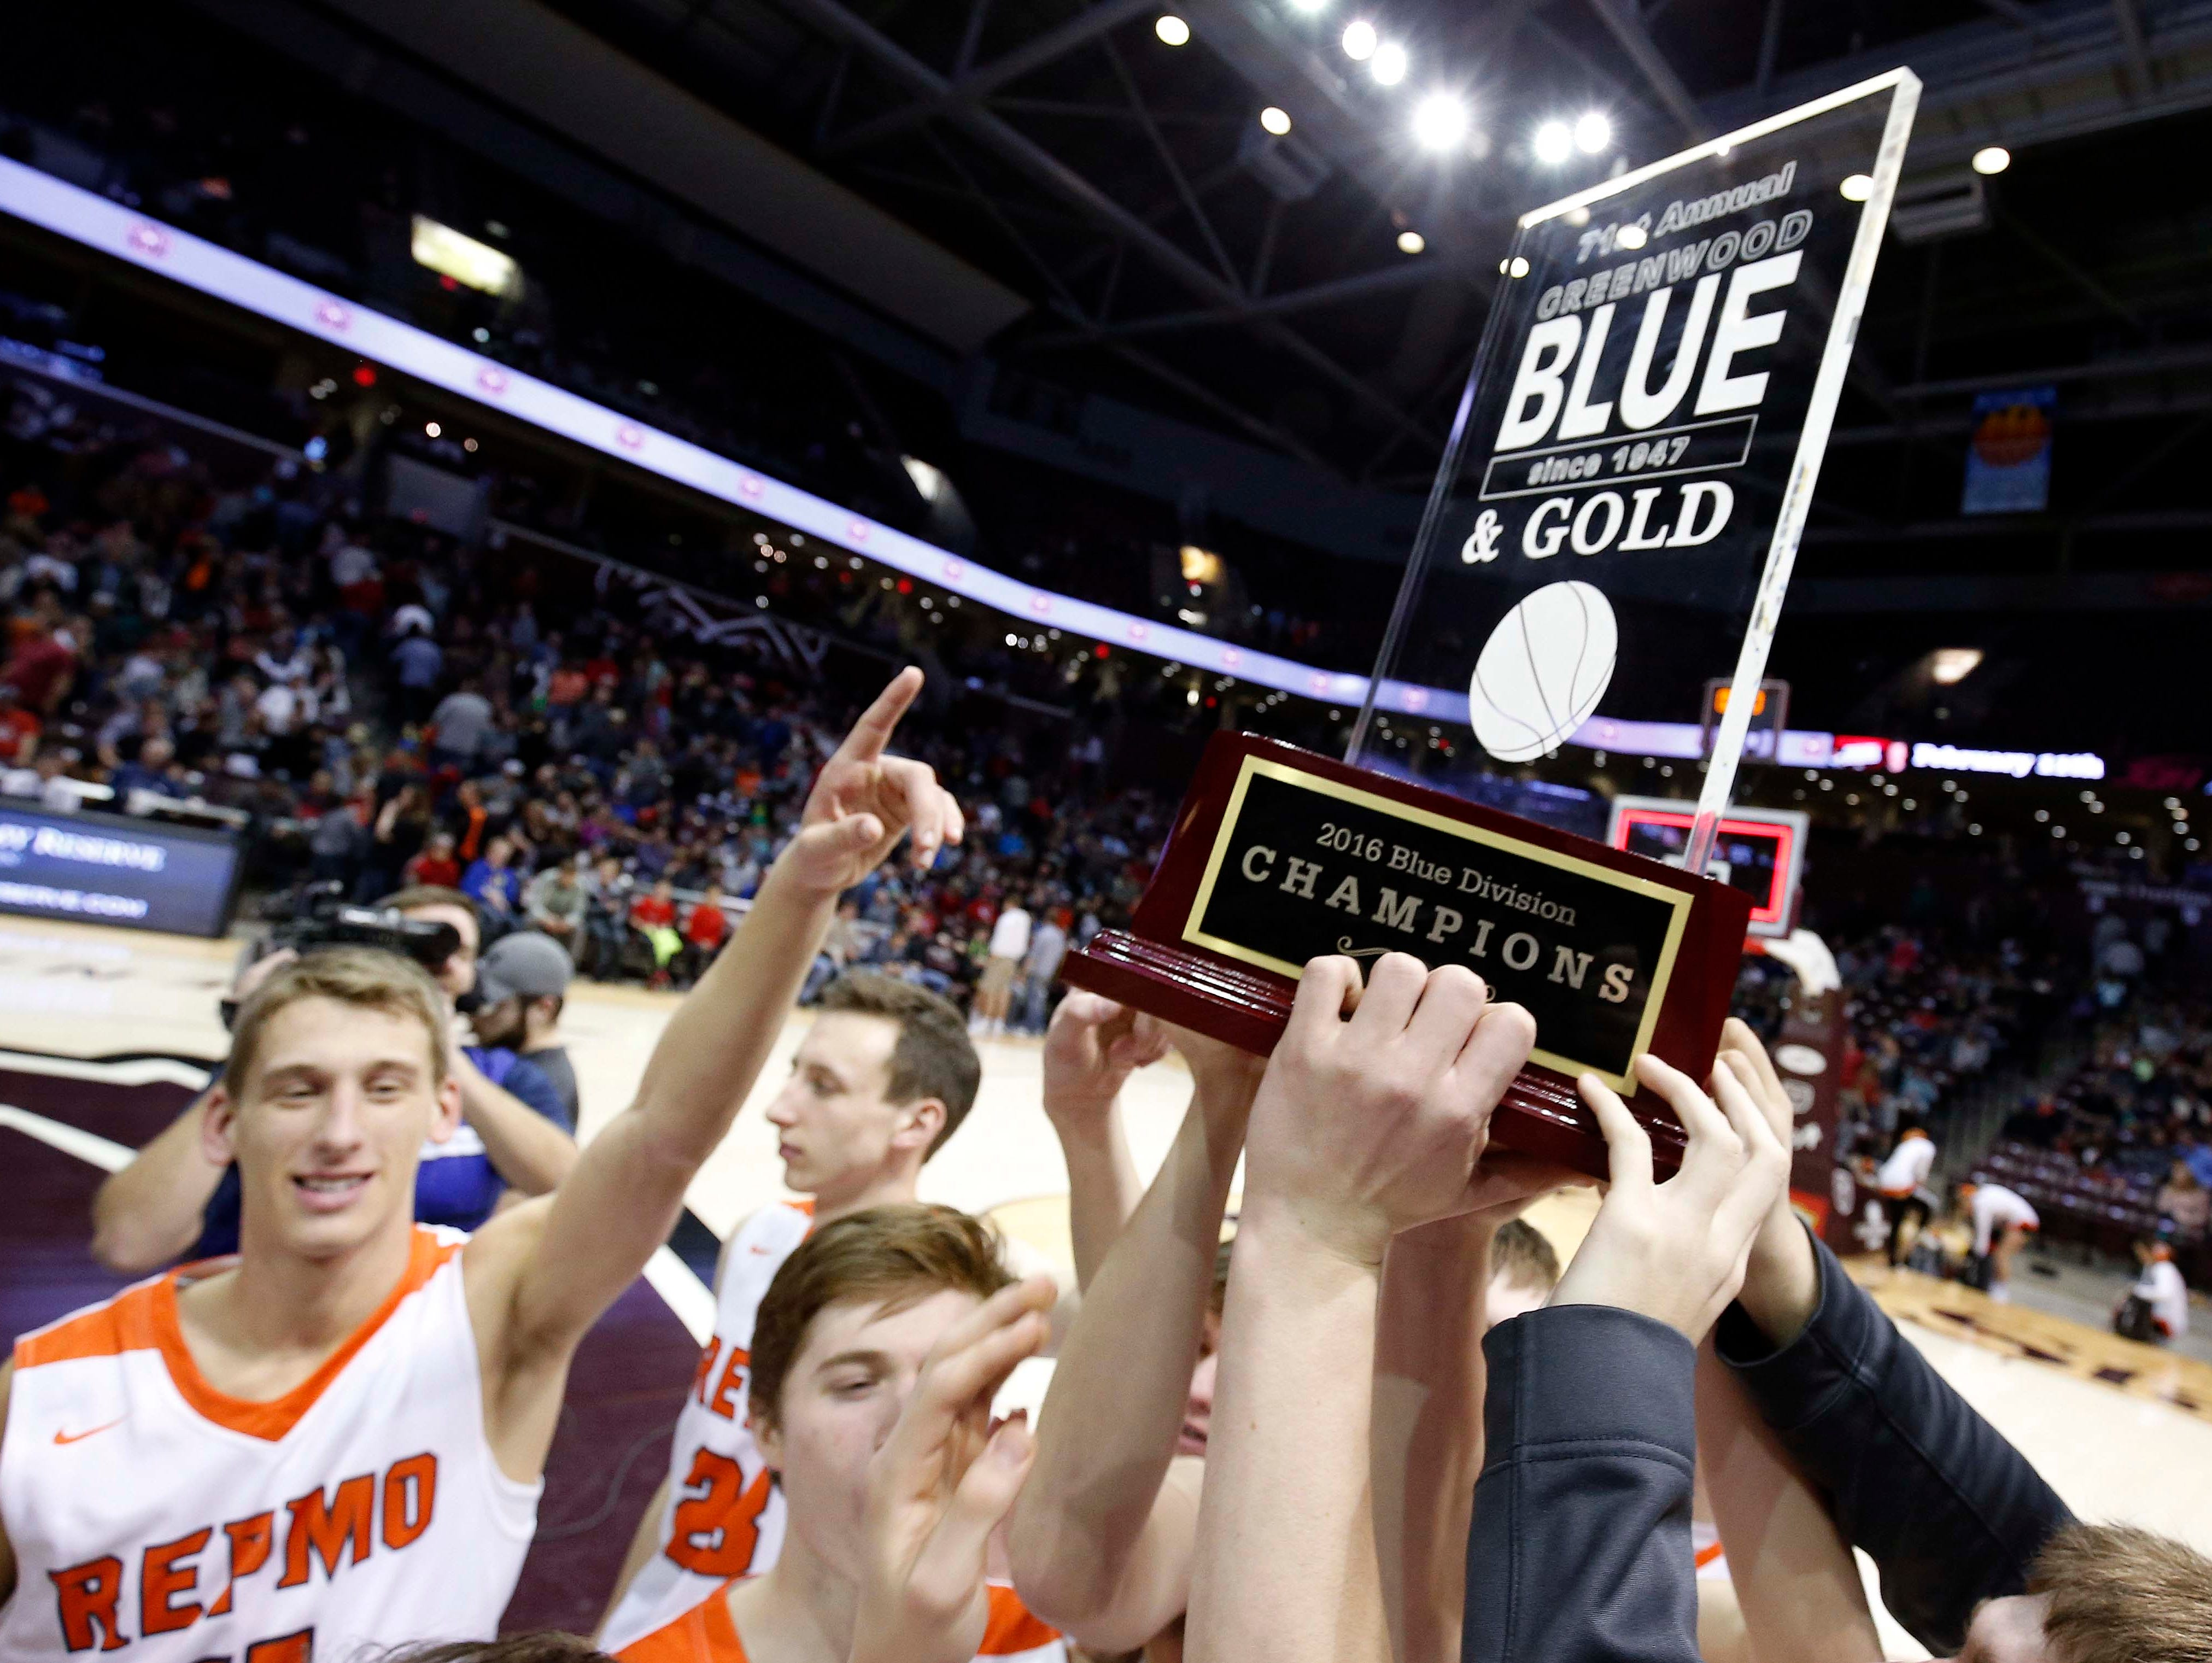 Republic hoist the trophy after beating Glendale in the Blue division final at JQH Arena on December 29, 2016.